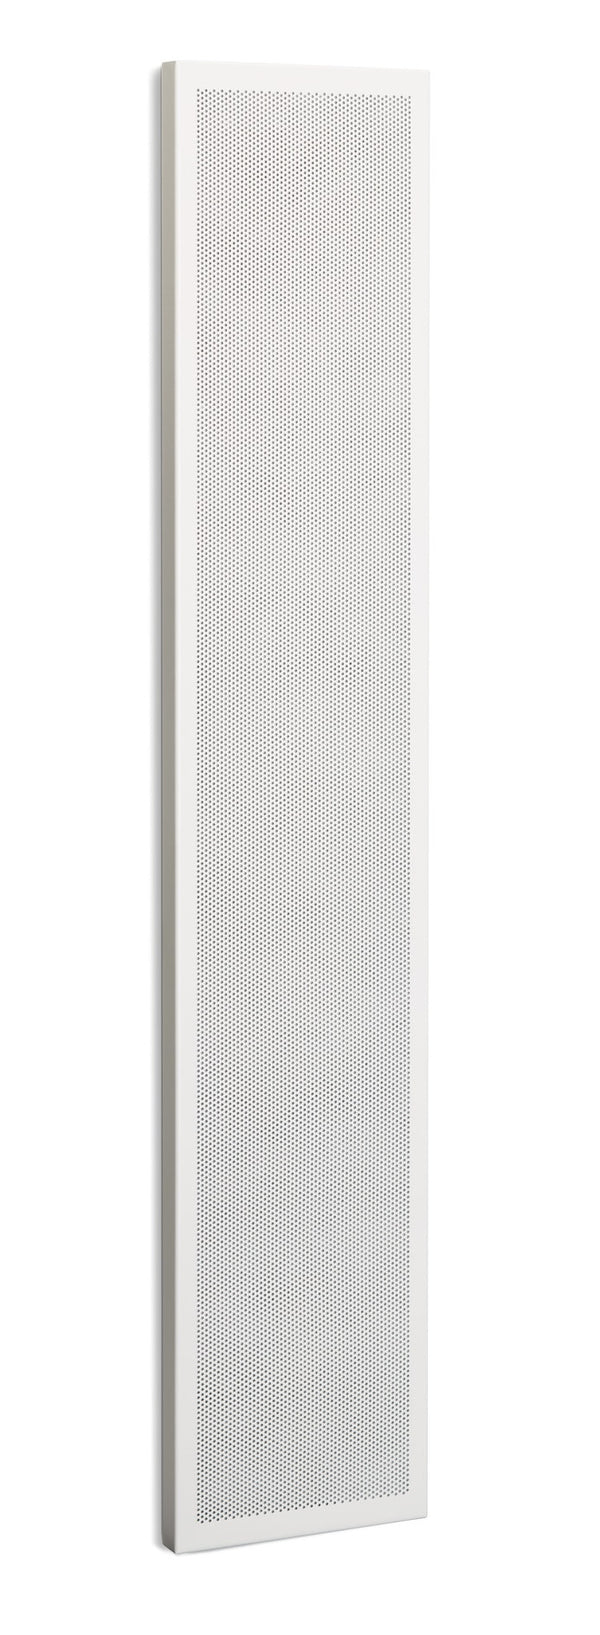 MartinLogan paintable metal grille cover For SLM XL Speaker